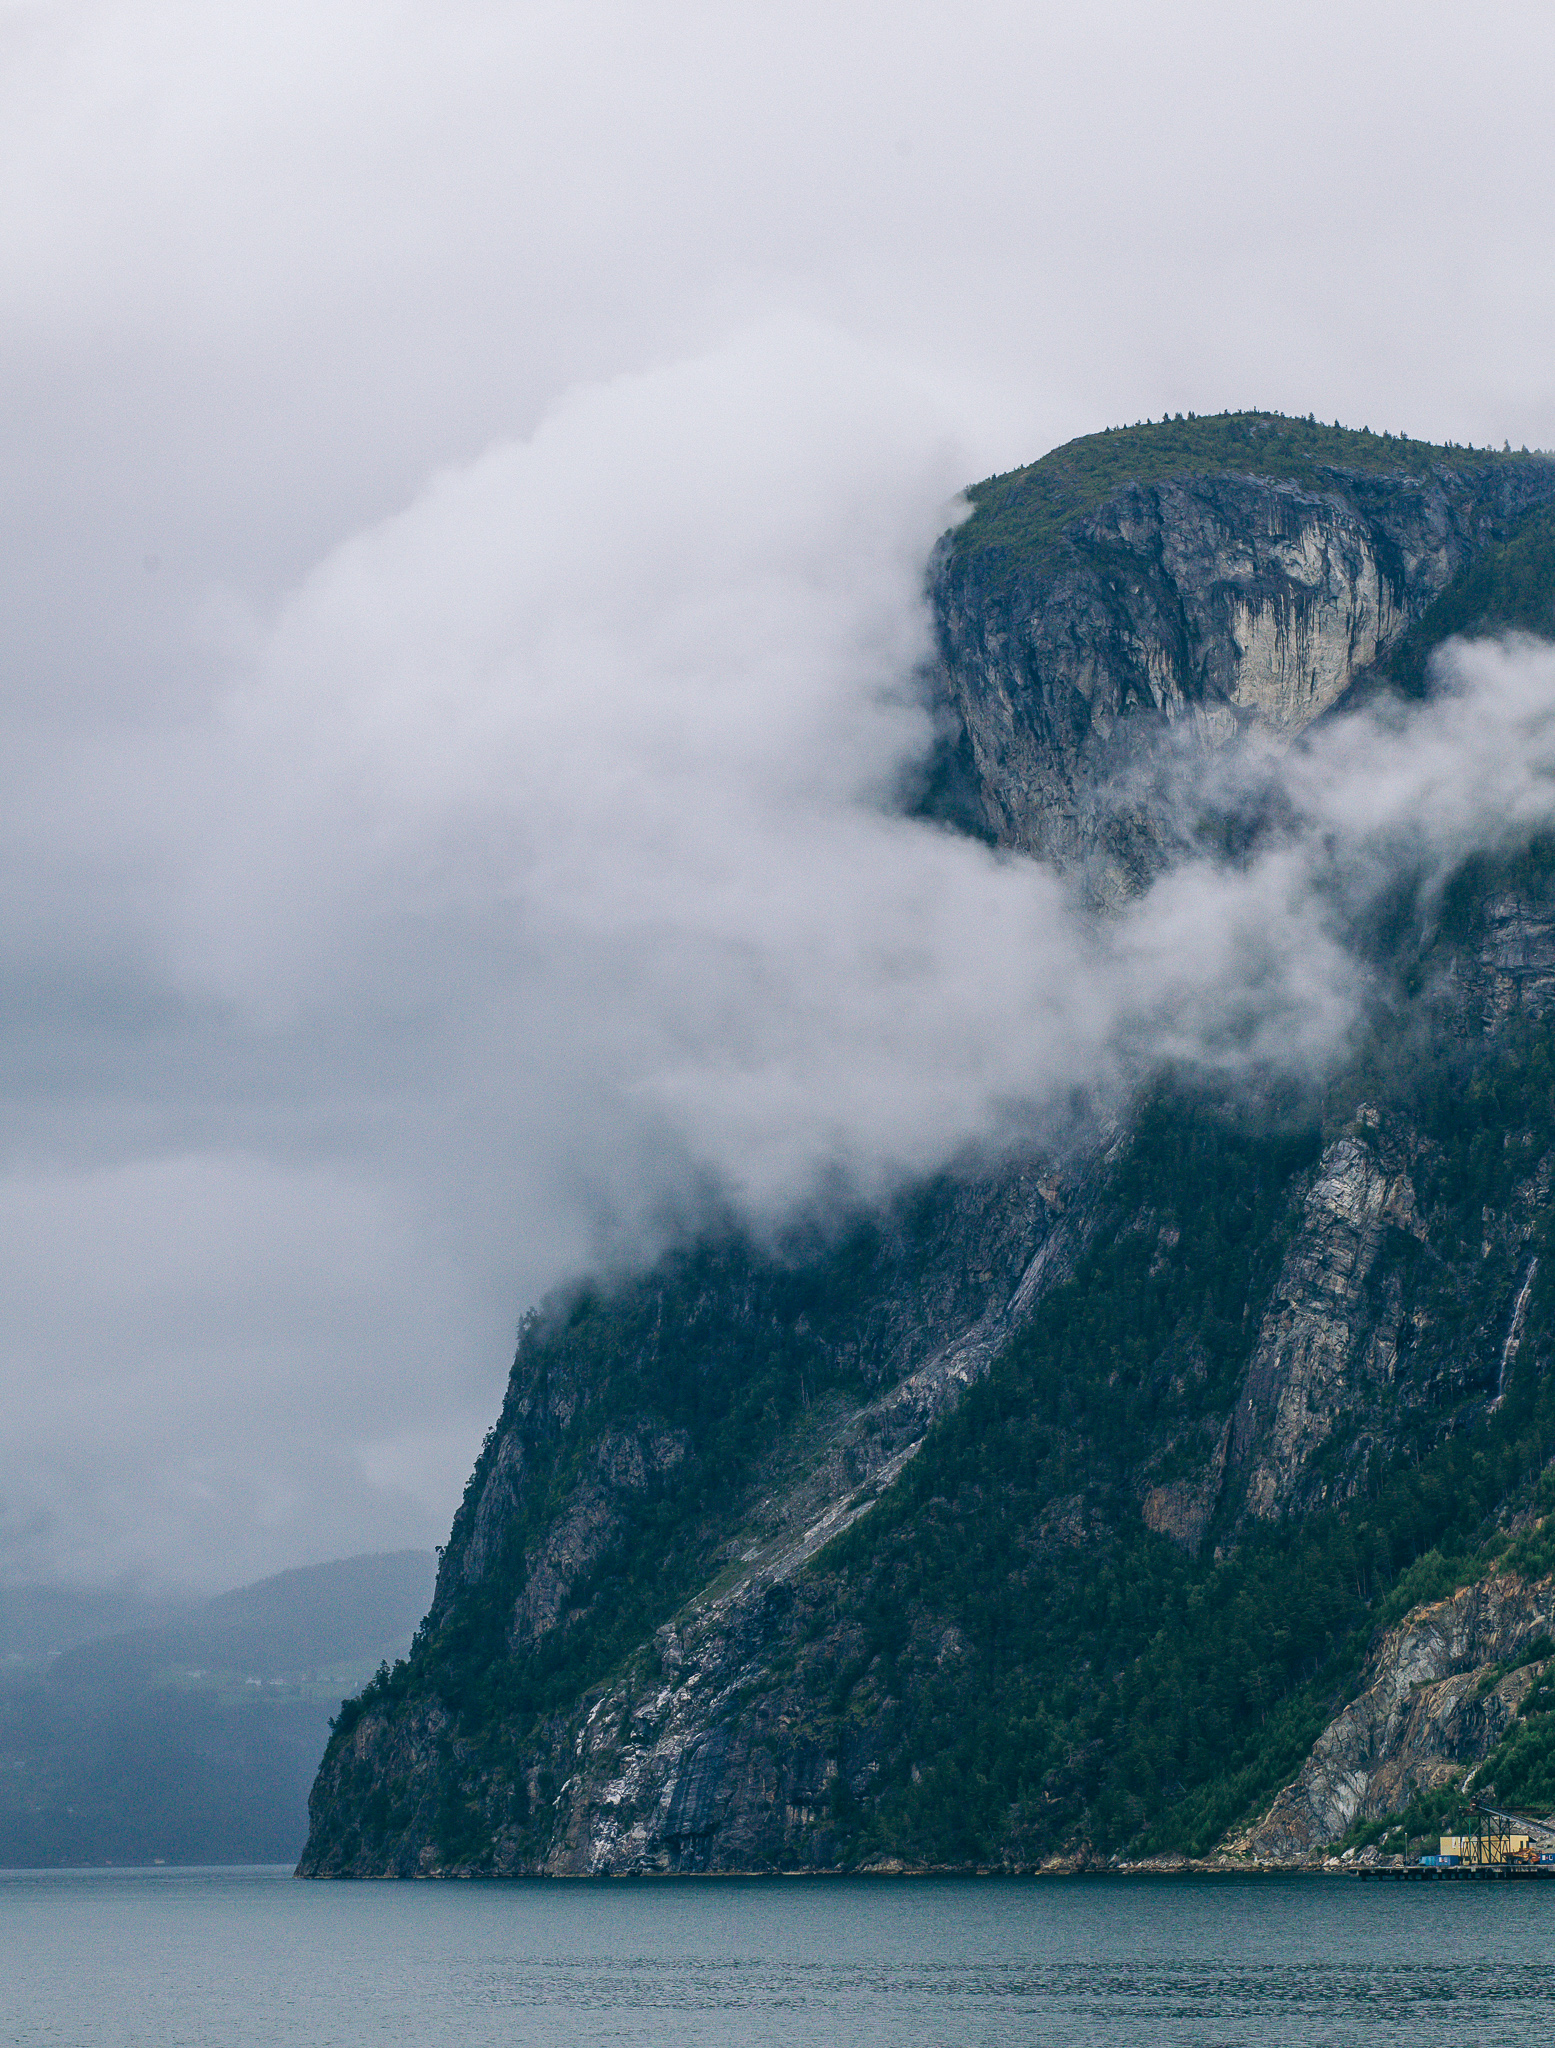 Towering cliffs - Canon 5D MKII | 85mm f/1.8 USM | ISO 800 | 1/2000 sec | f/8.0